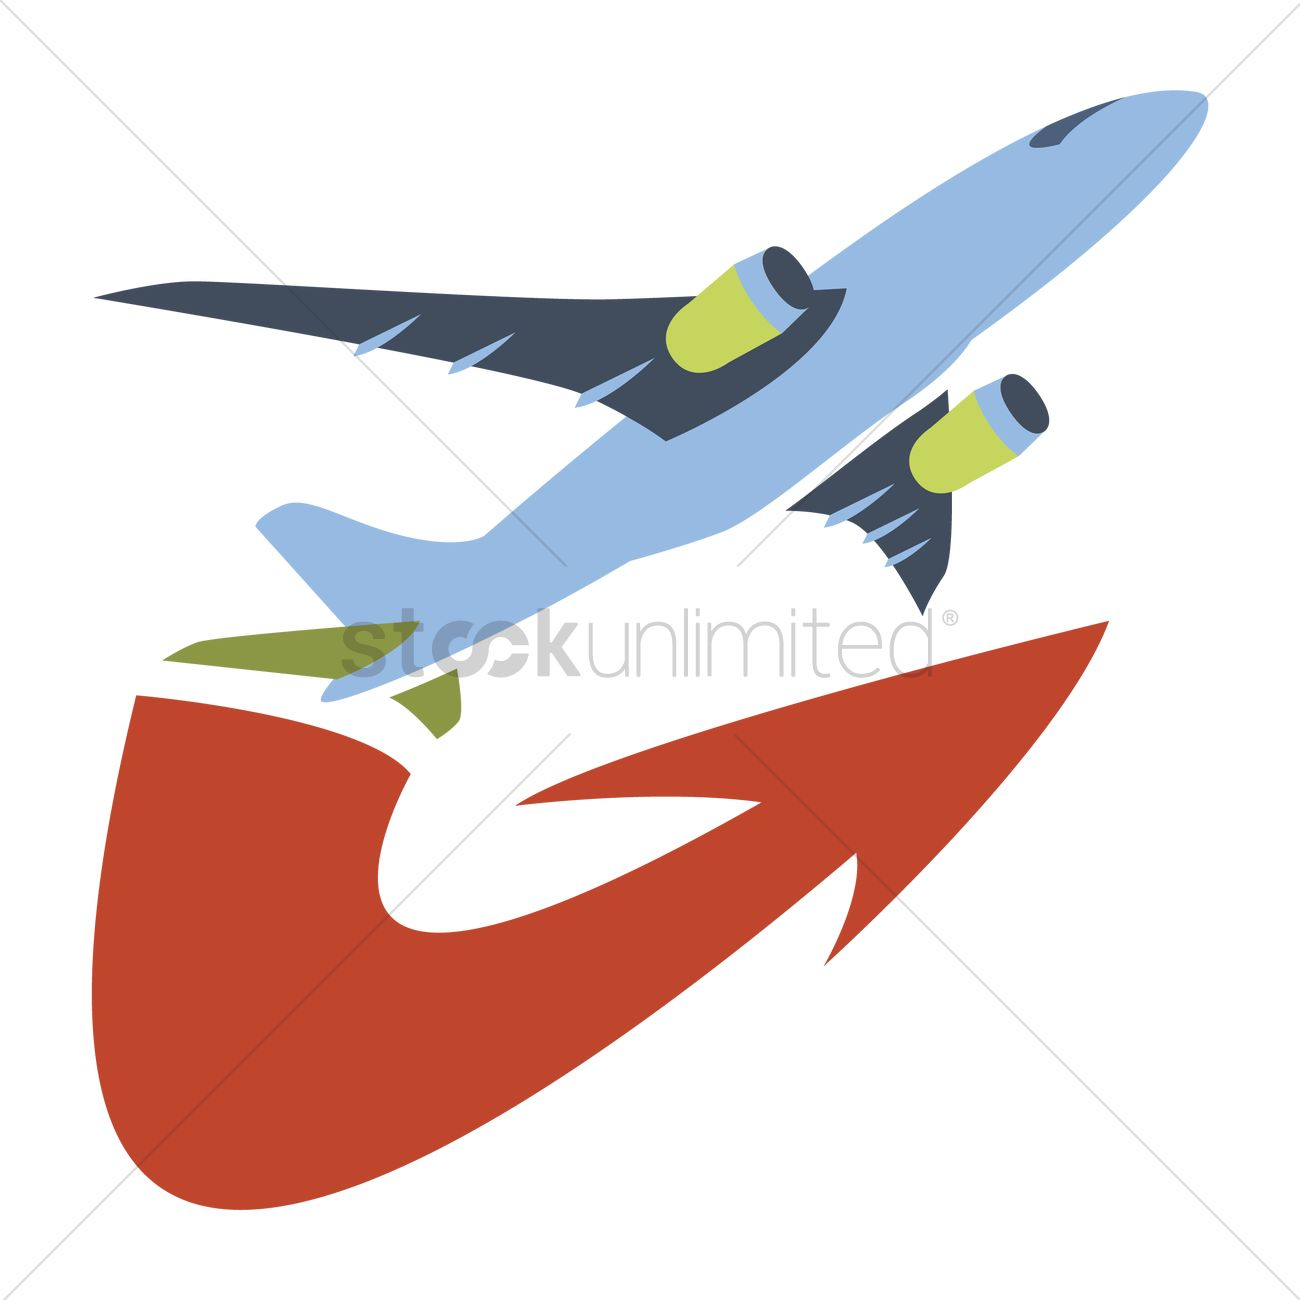 free an airplane flying with an arrow below vector image 1243972